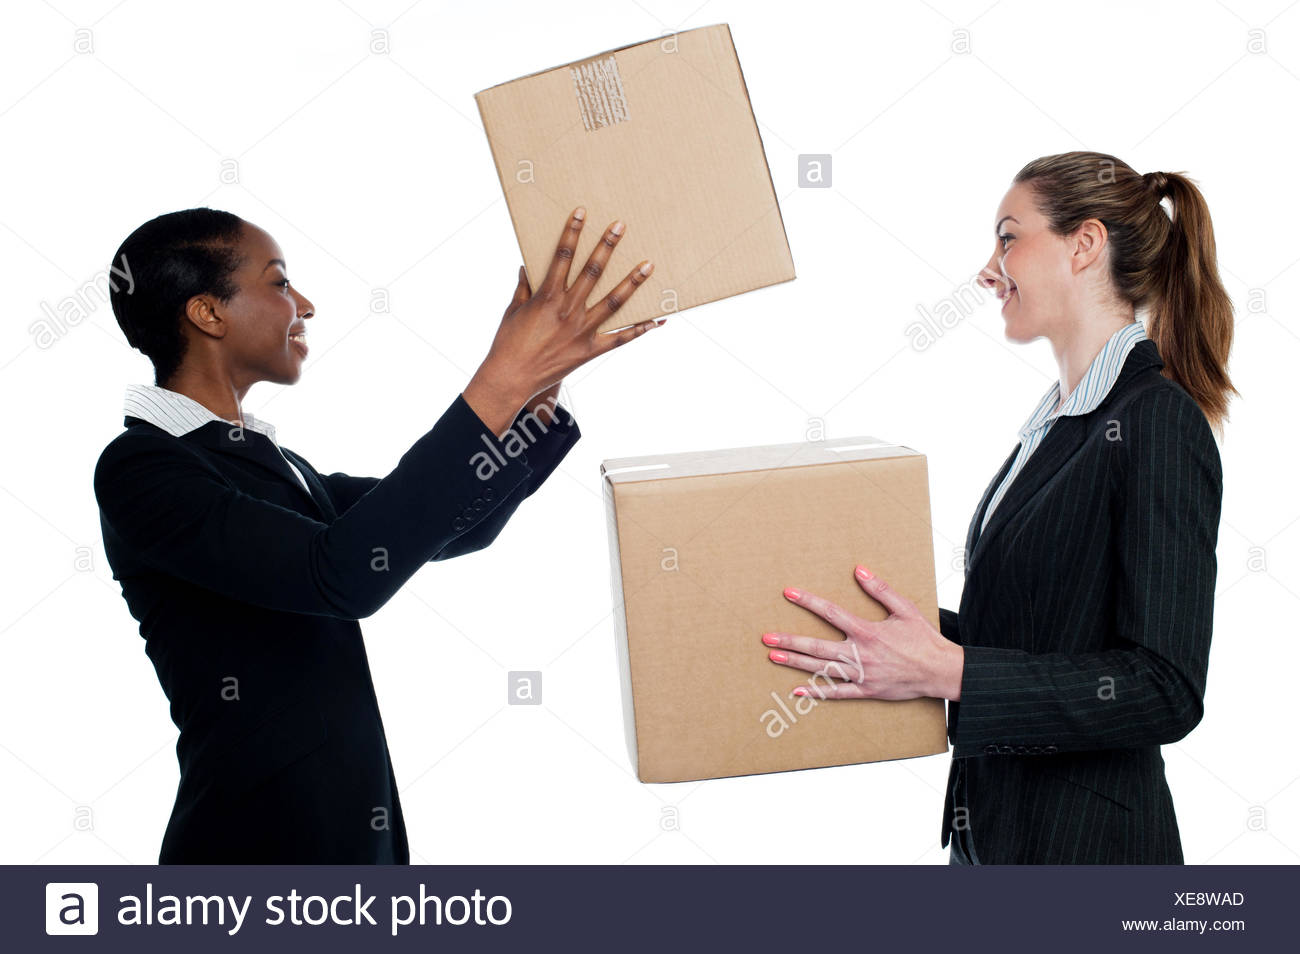 Businesswoman passing packed cartons - Stock Image